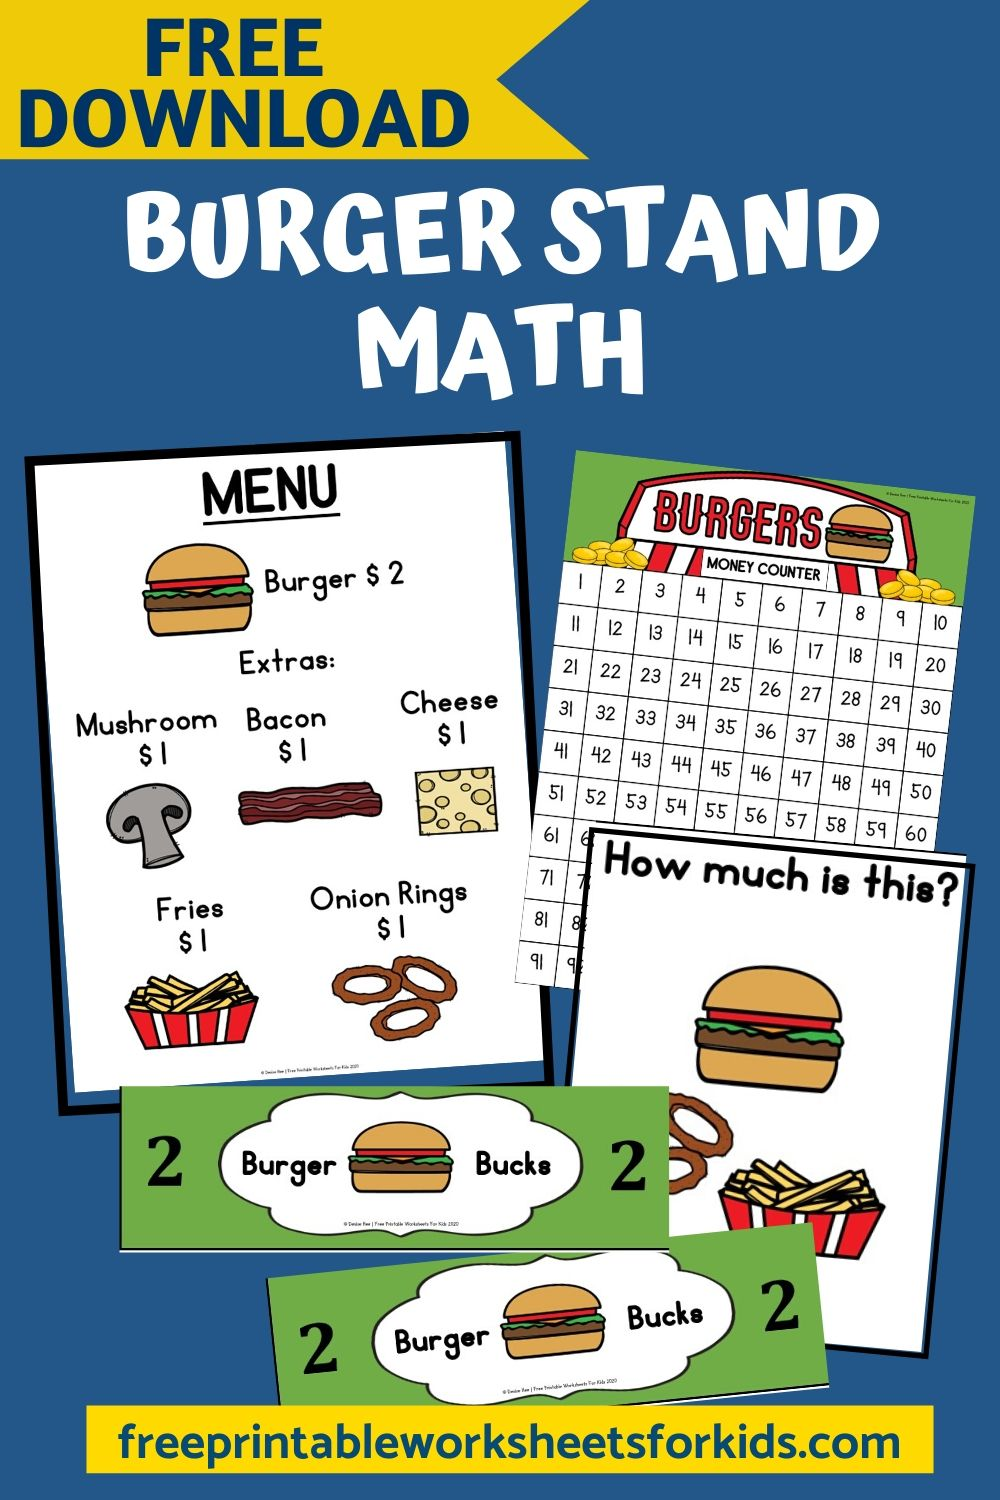 Fun Pretend Play Printables for Preschool and Kindergarten   Food Themed Counting Games   Hands On Addition Homeschool Activities   Kids Classroom Center Ideas and Worksheets #FreePrintableWorksheetsForKids #addition #count #burger #food #pretend